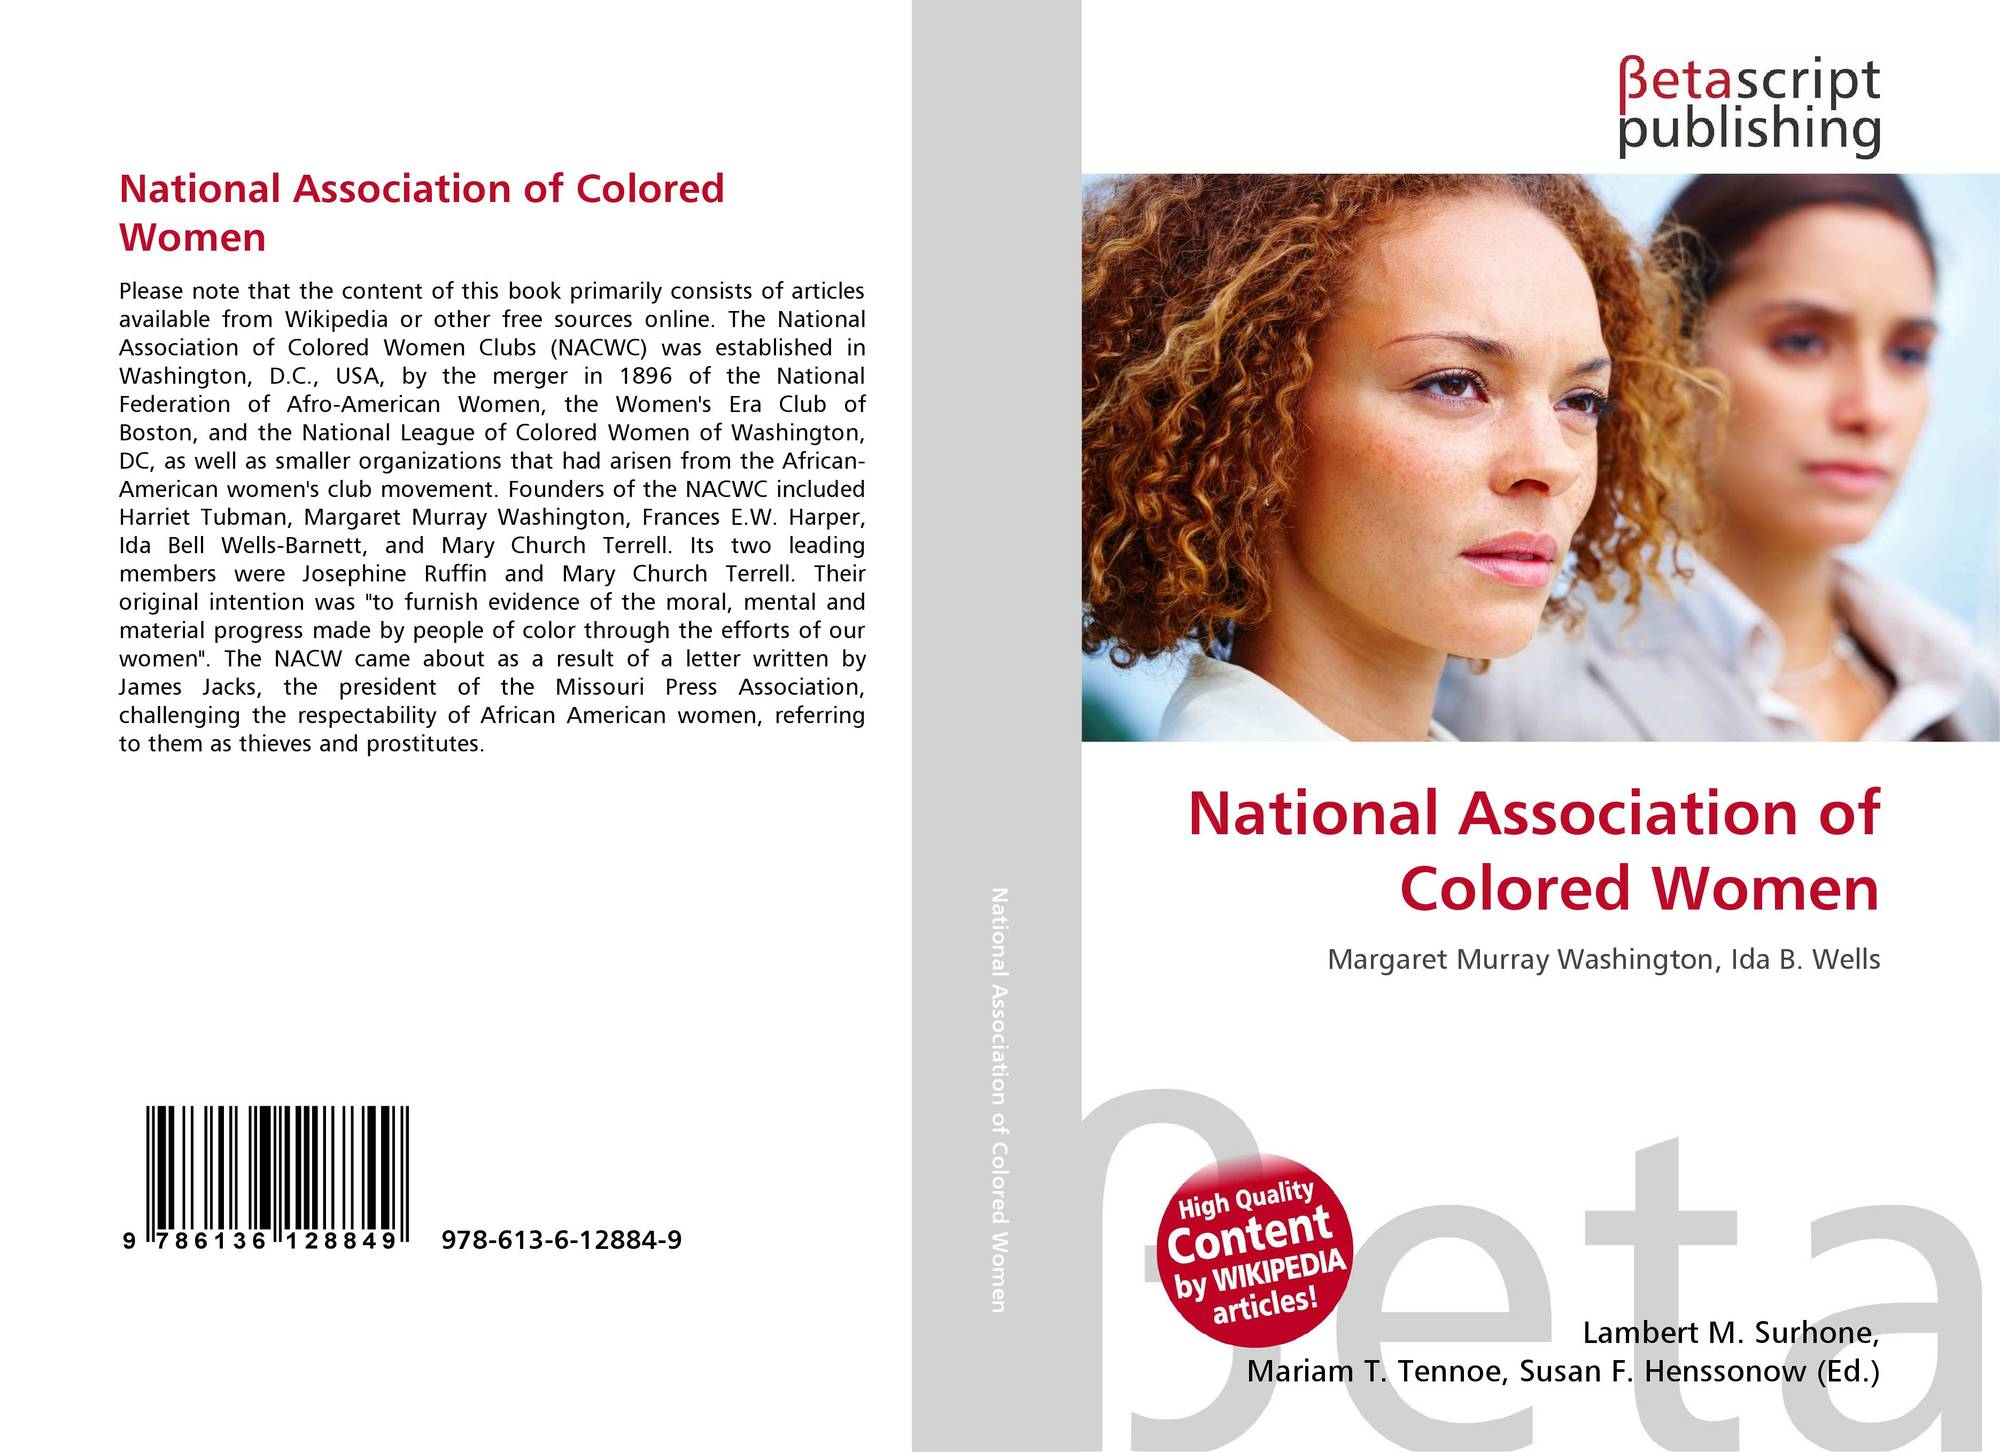 an introduction to the national association for the advancement of colored people 5 parties 5 plaintiff georgia naacp is an unincorporated association affiliated with the national association for the advancement of colored people, with its principal place of business located in atlanta, georgia.